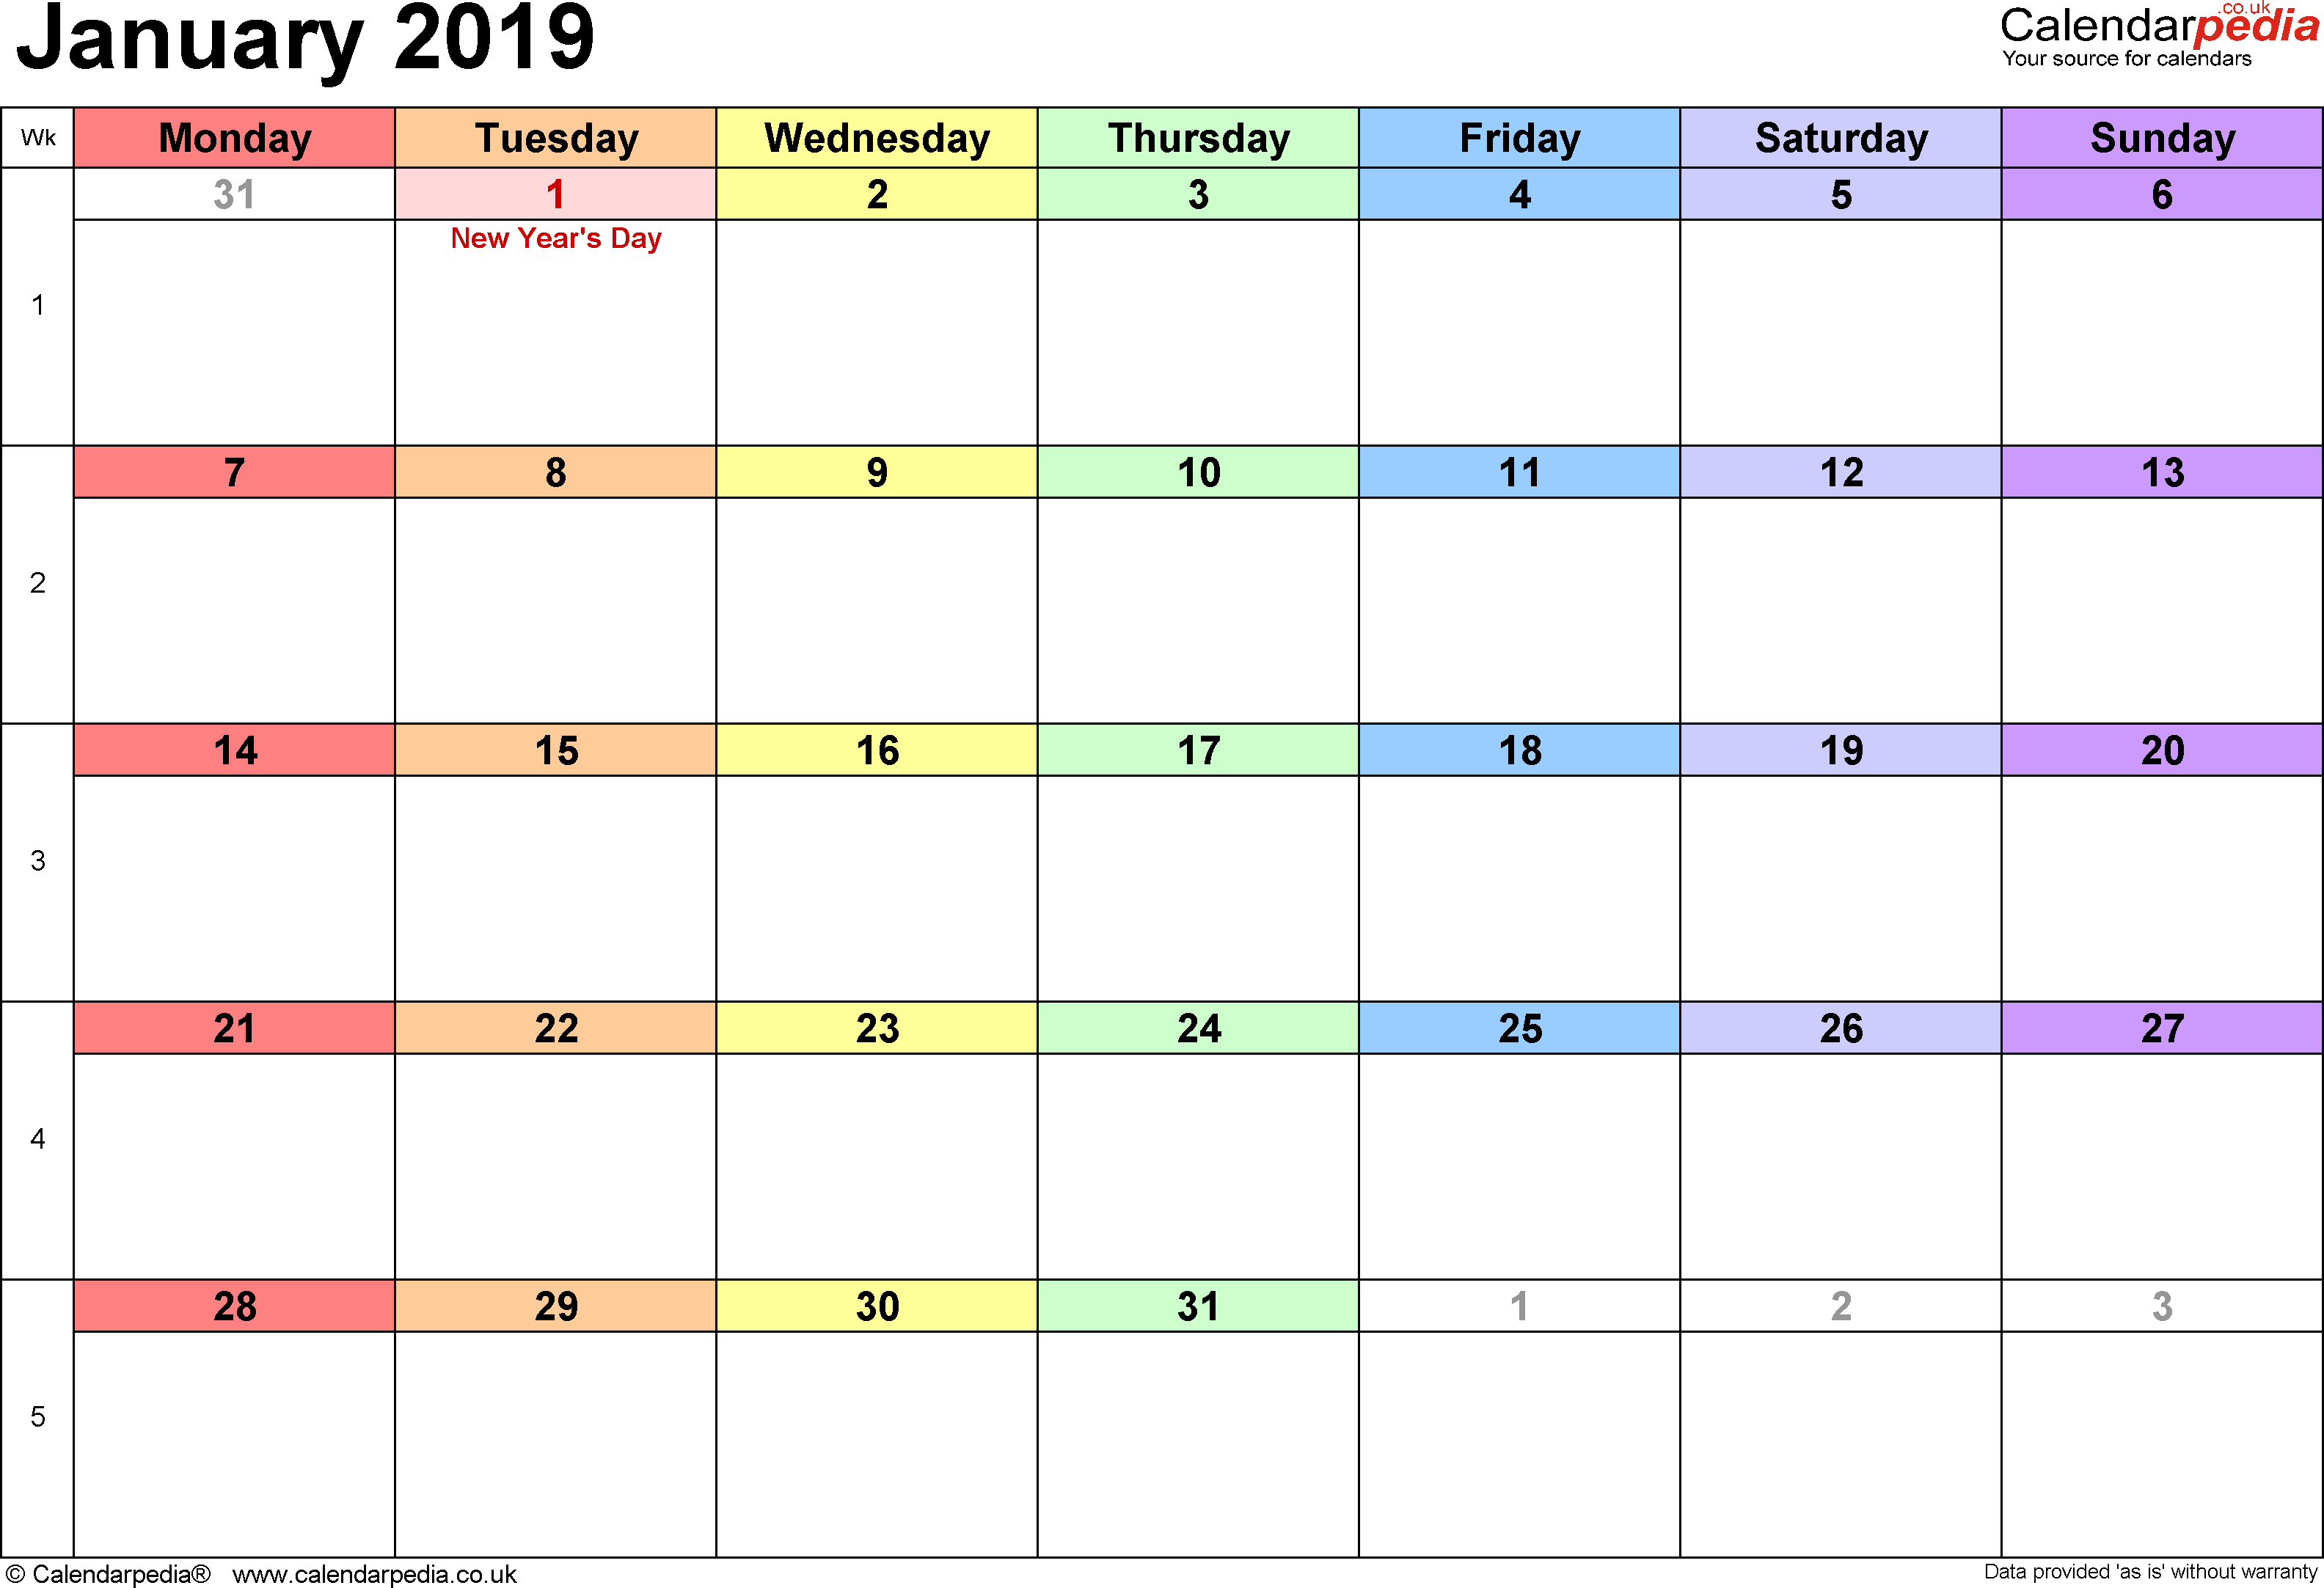 Calendar Sheet January 2019 Calendar January 2019 UK, Bank Holidays, Excel/PDF/Word Templates